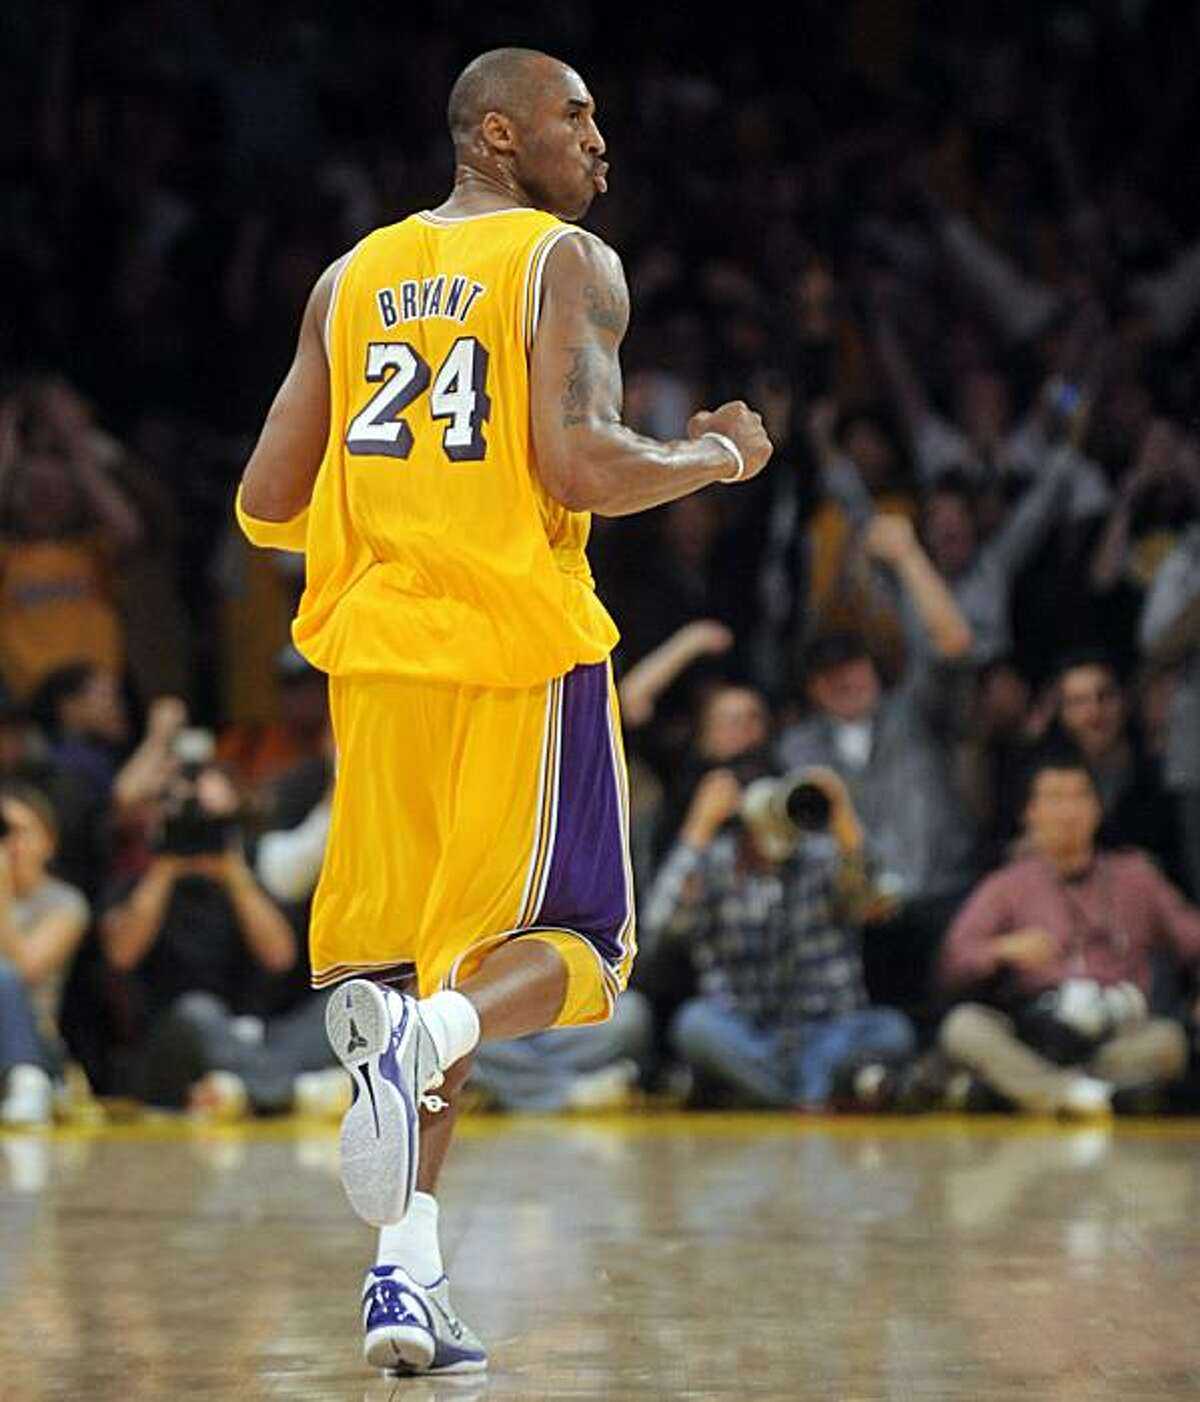 Los Angeles Lakers guard Kobe Bryant celebrates during the first half of an NBA basketball game against the Boston Celtics in Los Angeles, Sunday, Jan. 30, 2011.